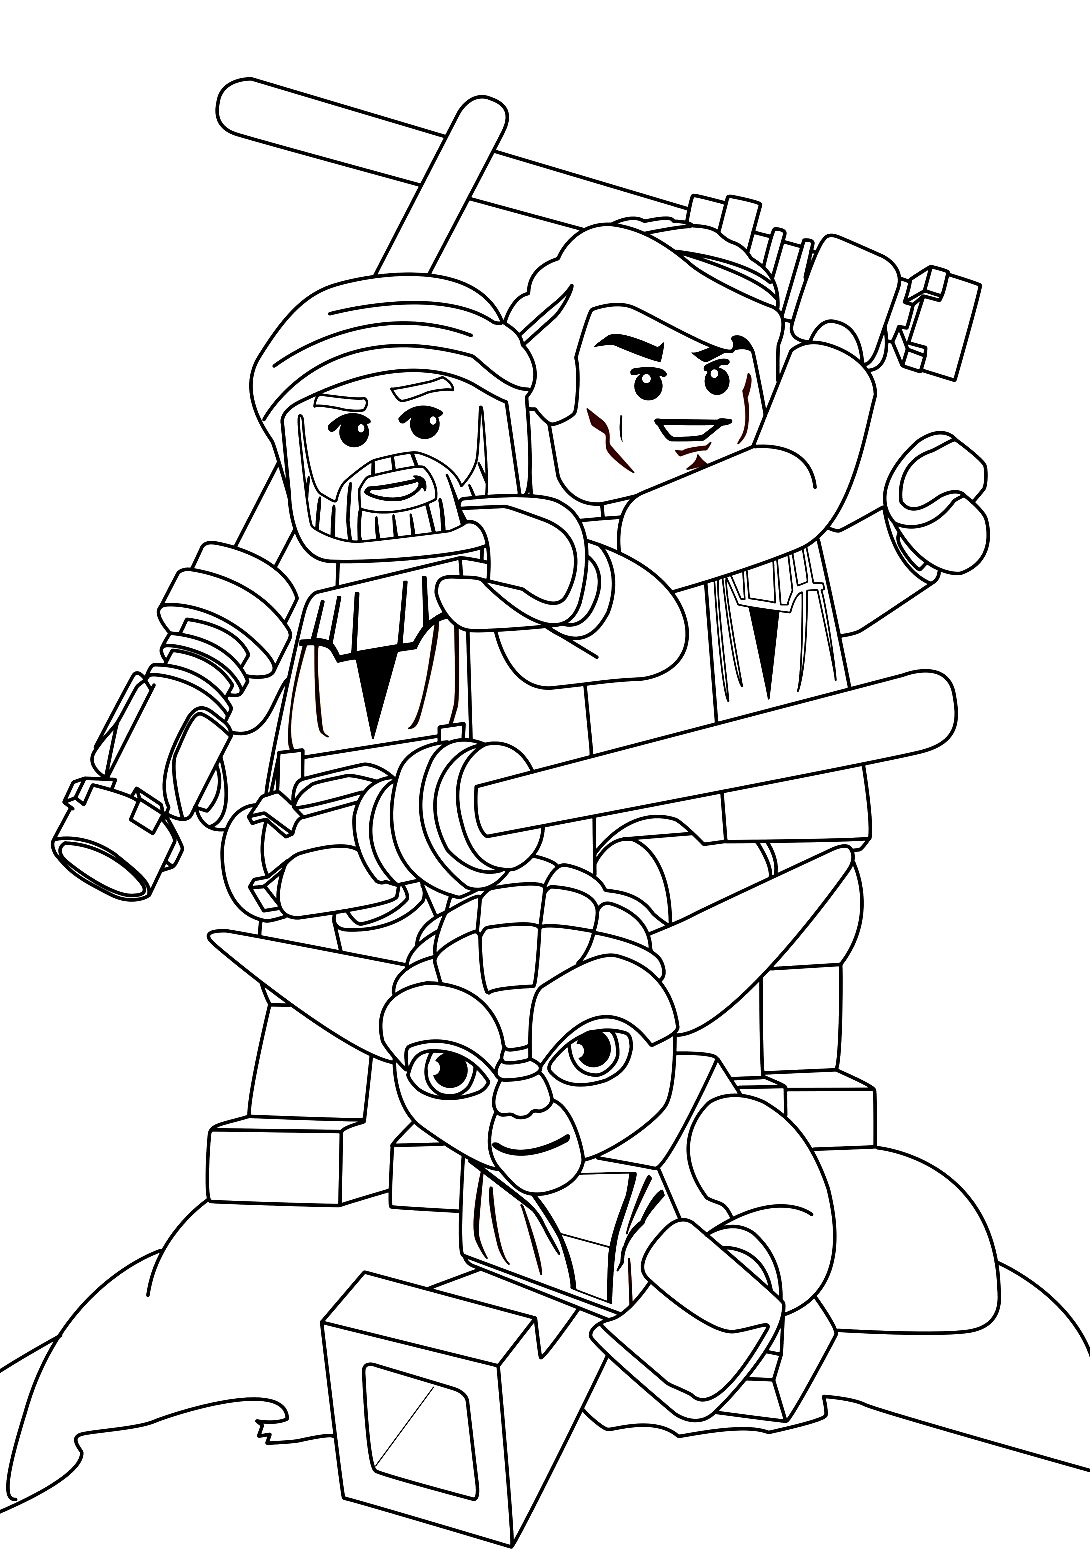 1090x1549 Lego Star Wars Coloring Pages